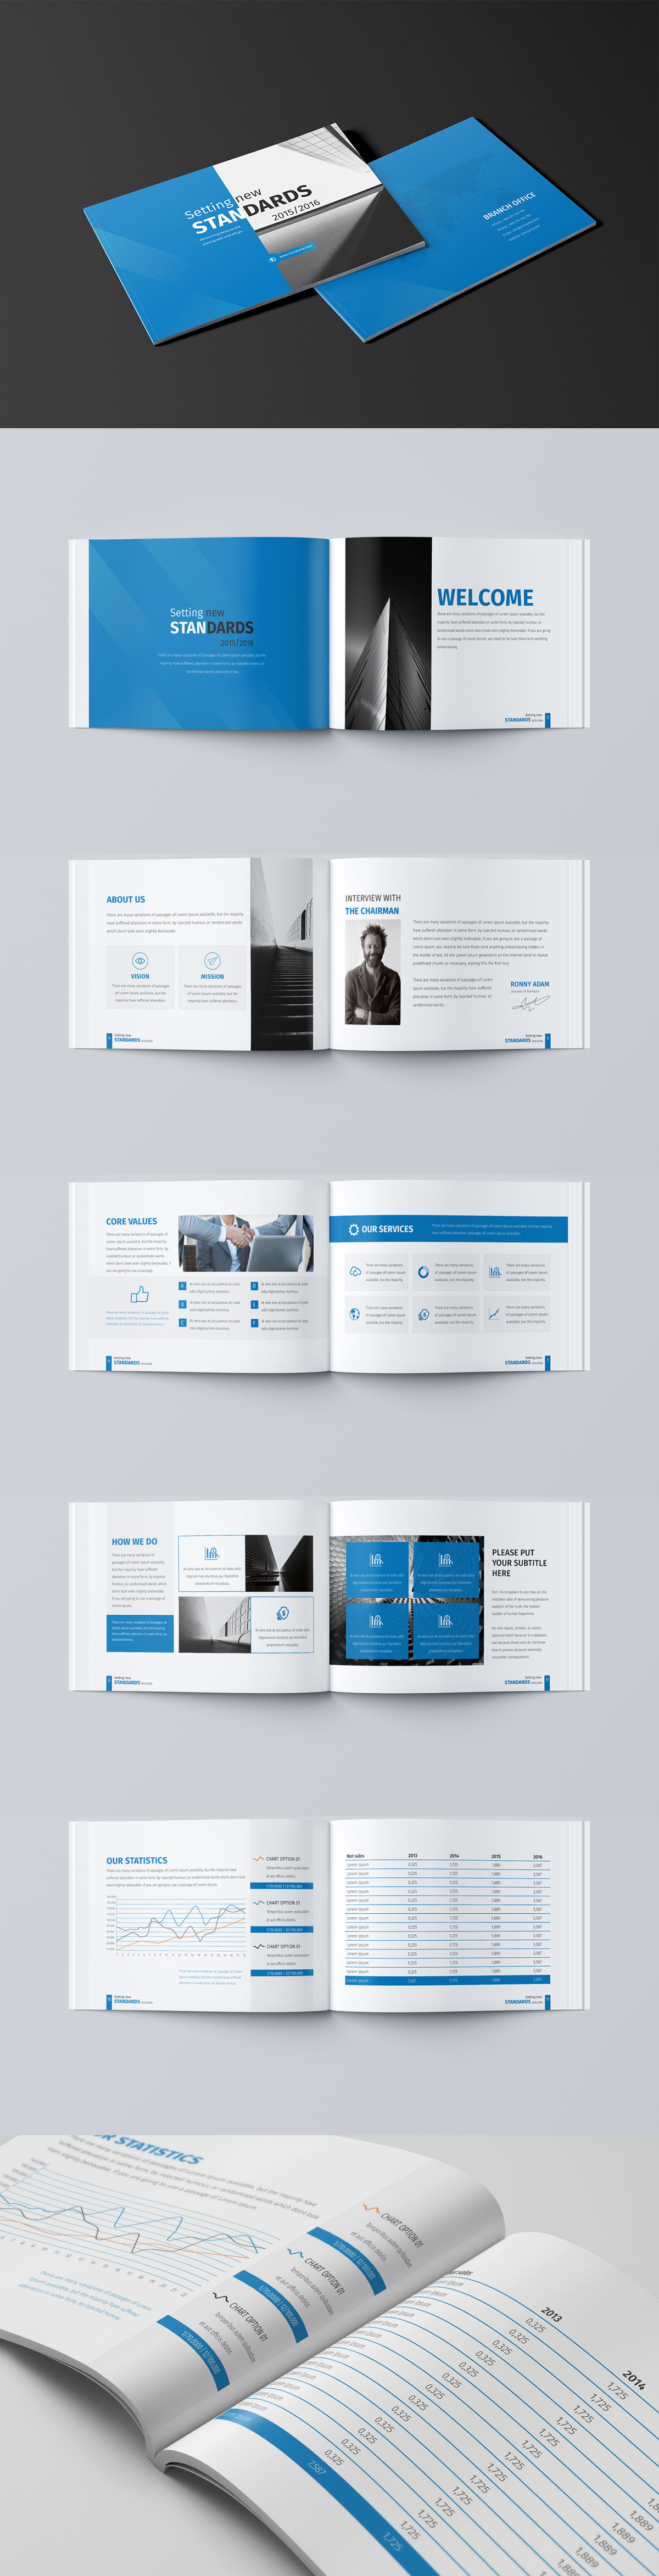 Mini Business Brochure 12 Pages A5 Template Indesign Indd Within 12 Page Brochure Template